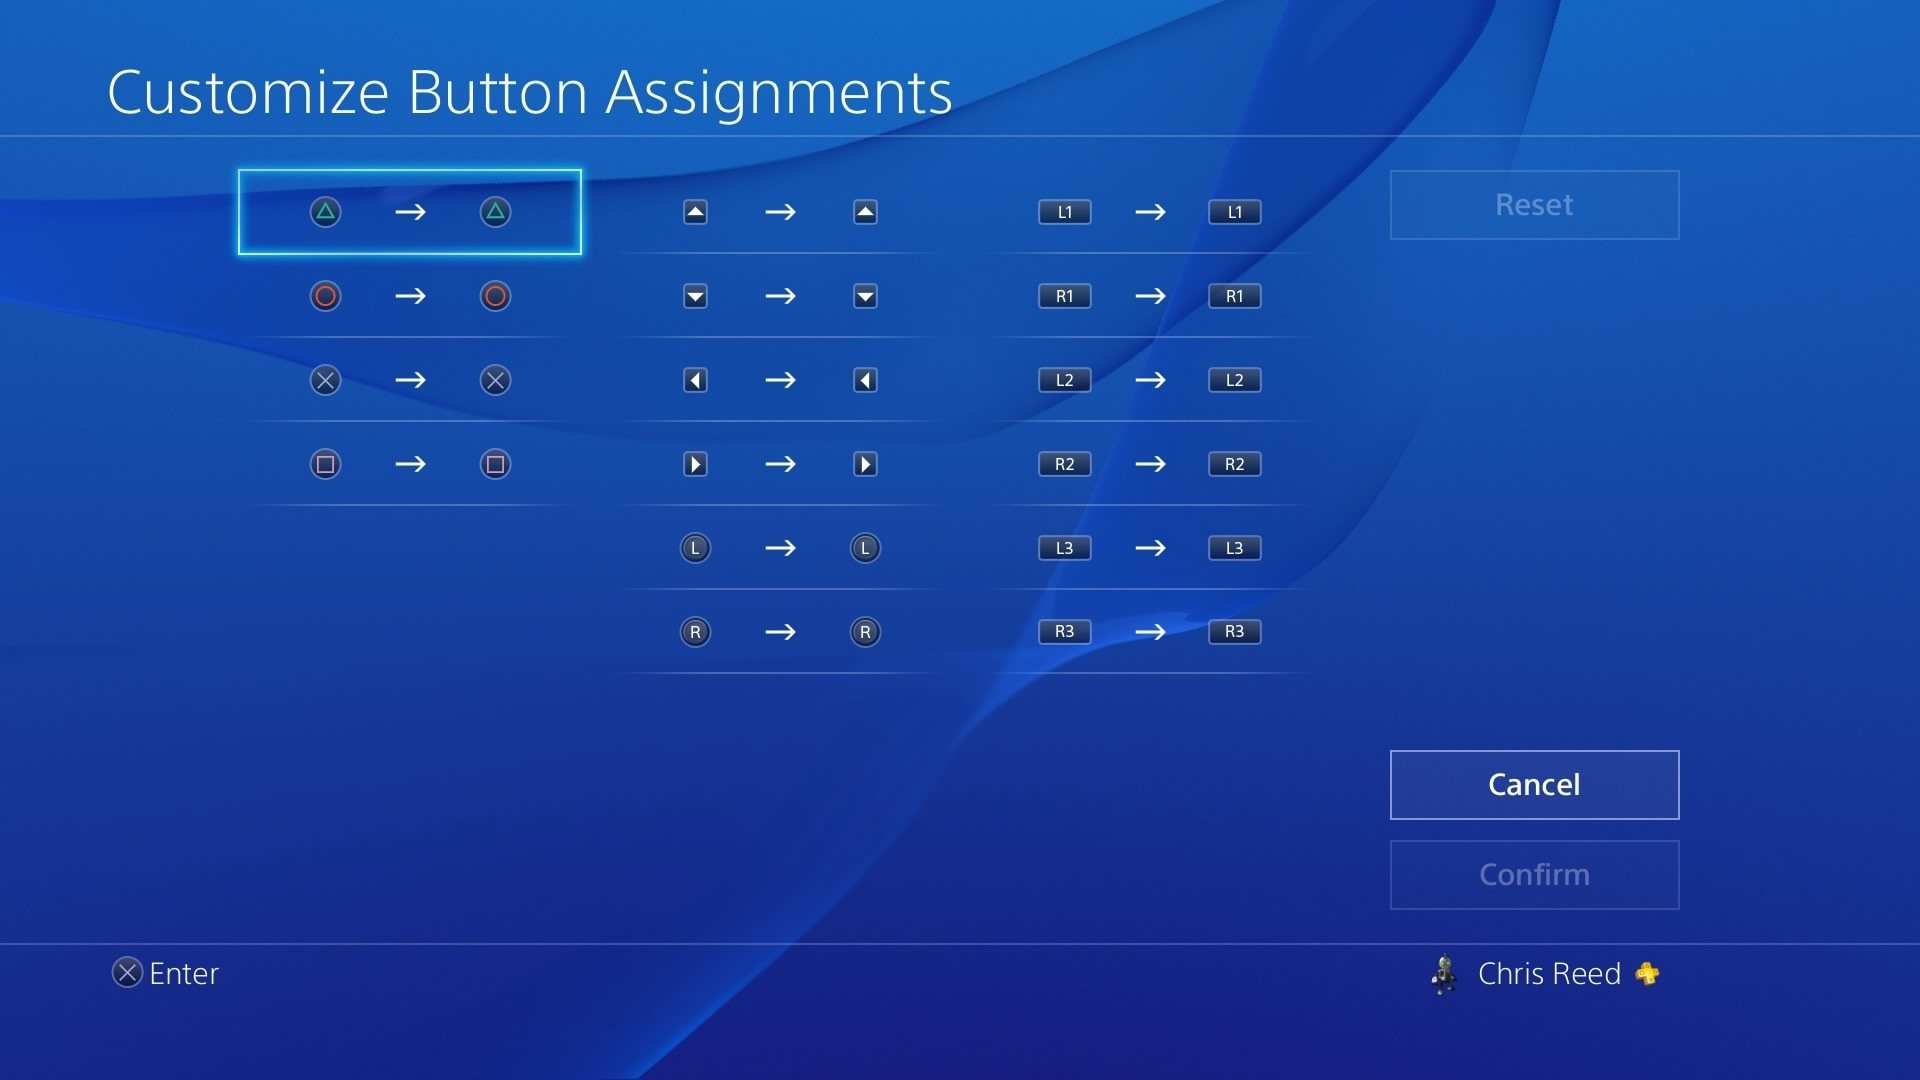 PS4 customize buttons screen.